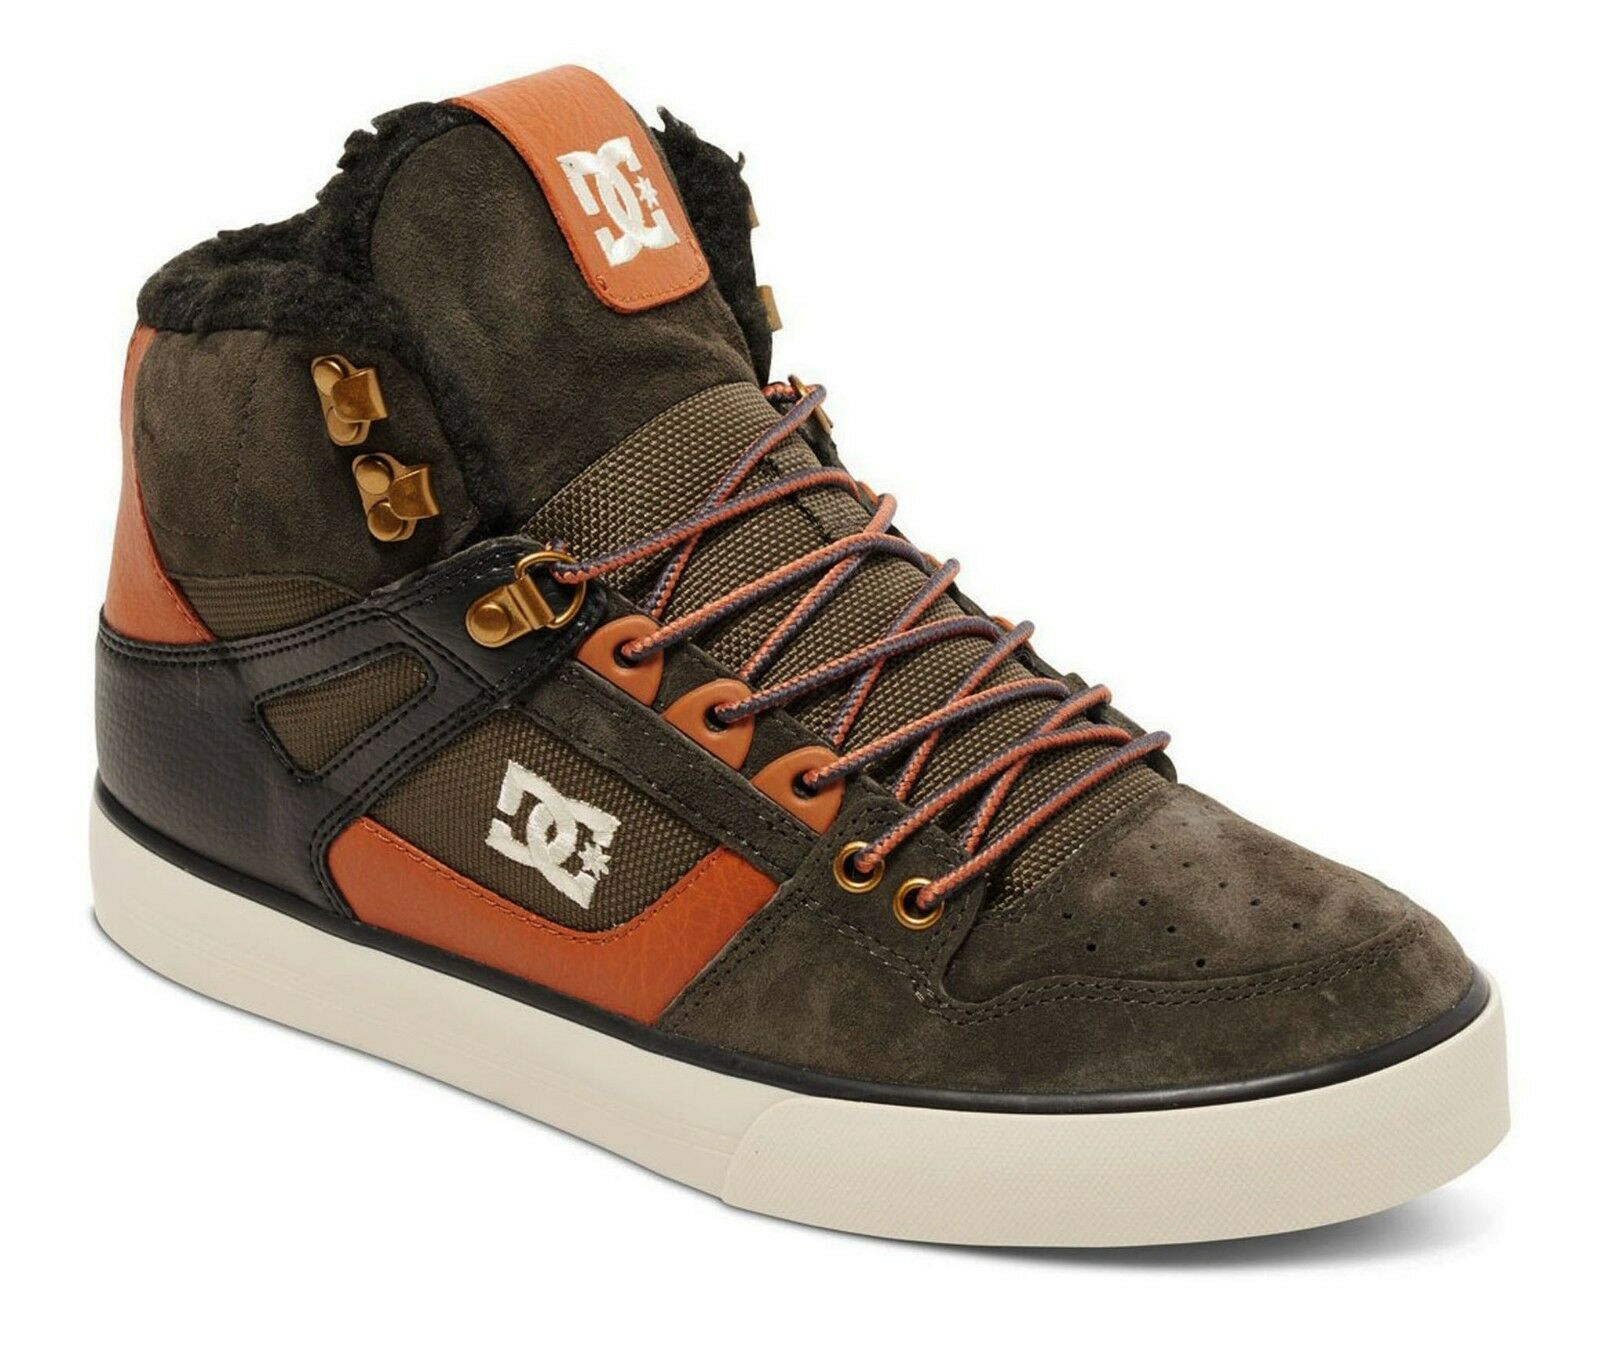 DC Shoes Men SPARTAN HIGH WNT- military - Winterboot - Gr.: 47-52  UVP.: 114,95